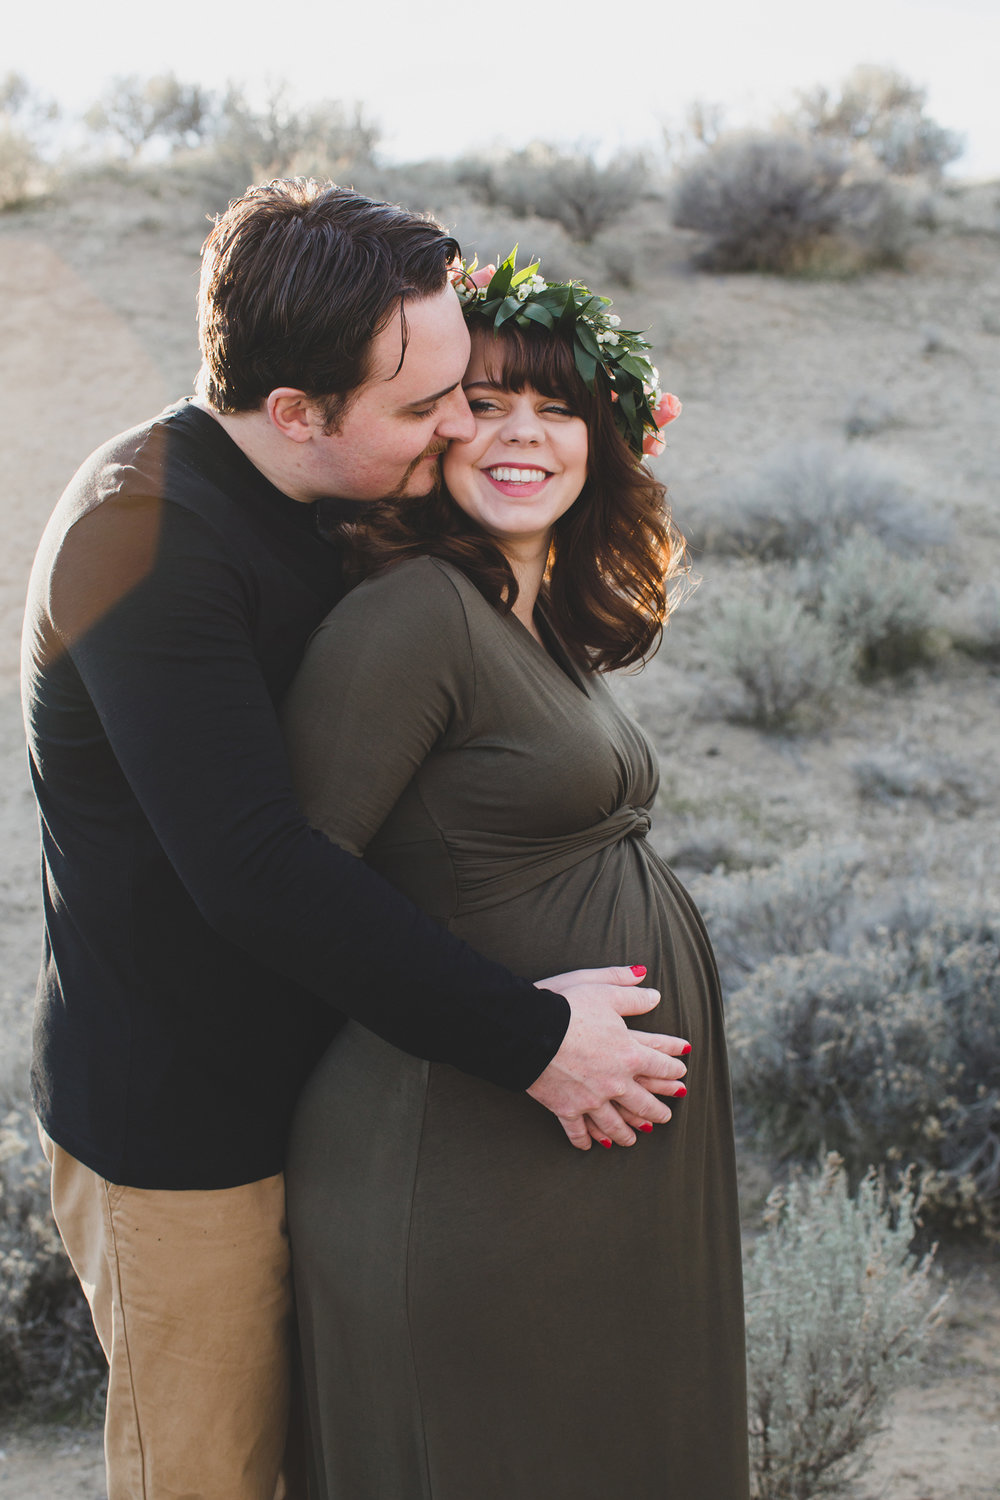 Tri Cities Maternity photographer_tri cities maternity_richland photographer_kennewick photographer_maternity session_red mountain_mama to be_parents to be_tri cities family session_red mountain trails_sage brush_horse_desert session_sunset session_3